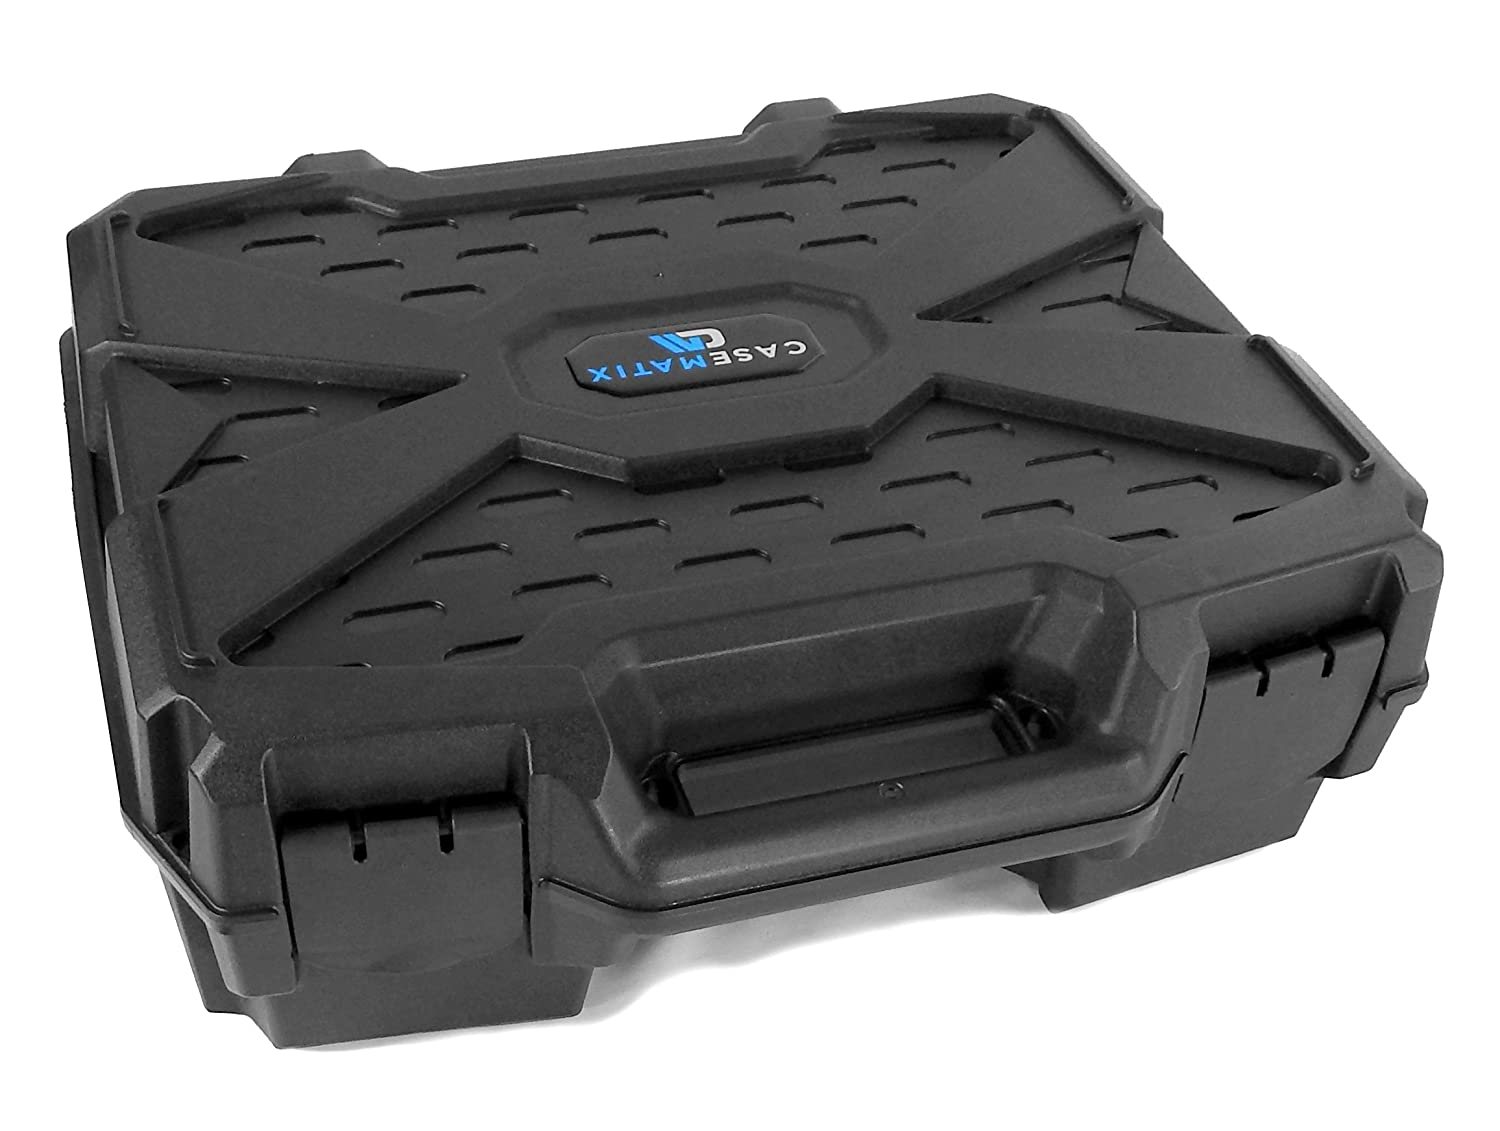 Amazon.com: Durable and Secure Projector Hard Case by CASEMATIX - For Dell P318S / 1550 / 1650 / 1450 / 4350: Electronics